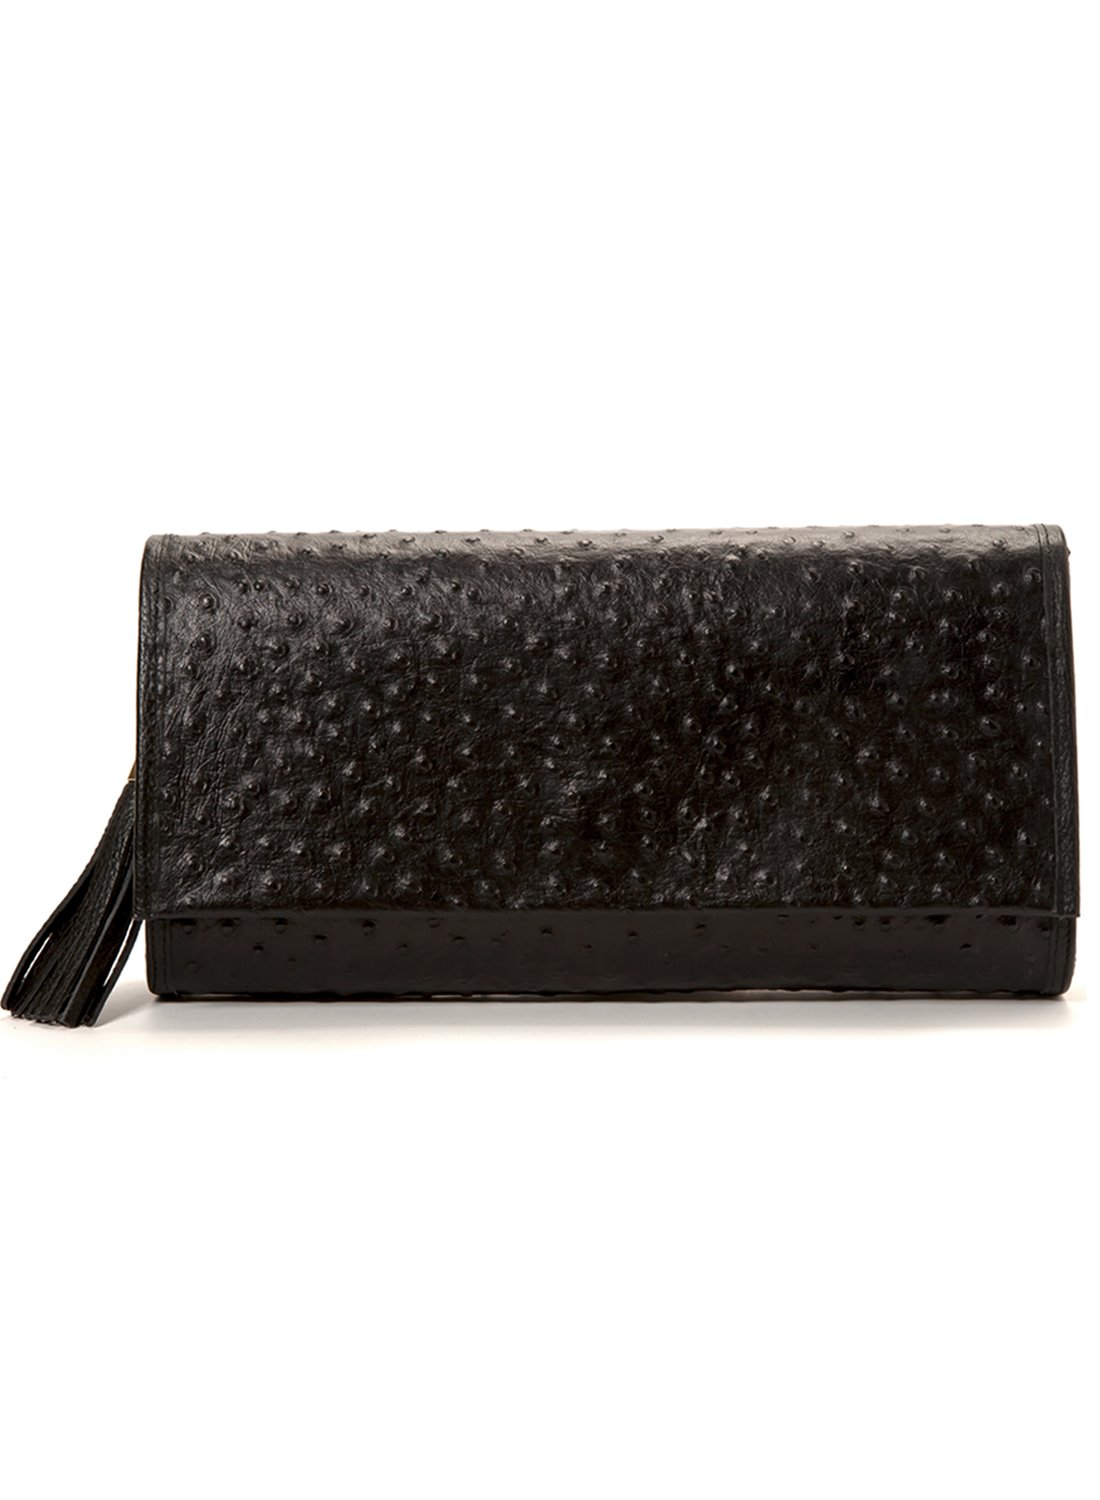 'Cara' Envelope Clutch in Black Ostrich Print Leather | Mel Boteri | Front View With Tassel